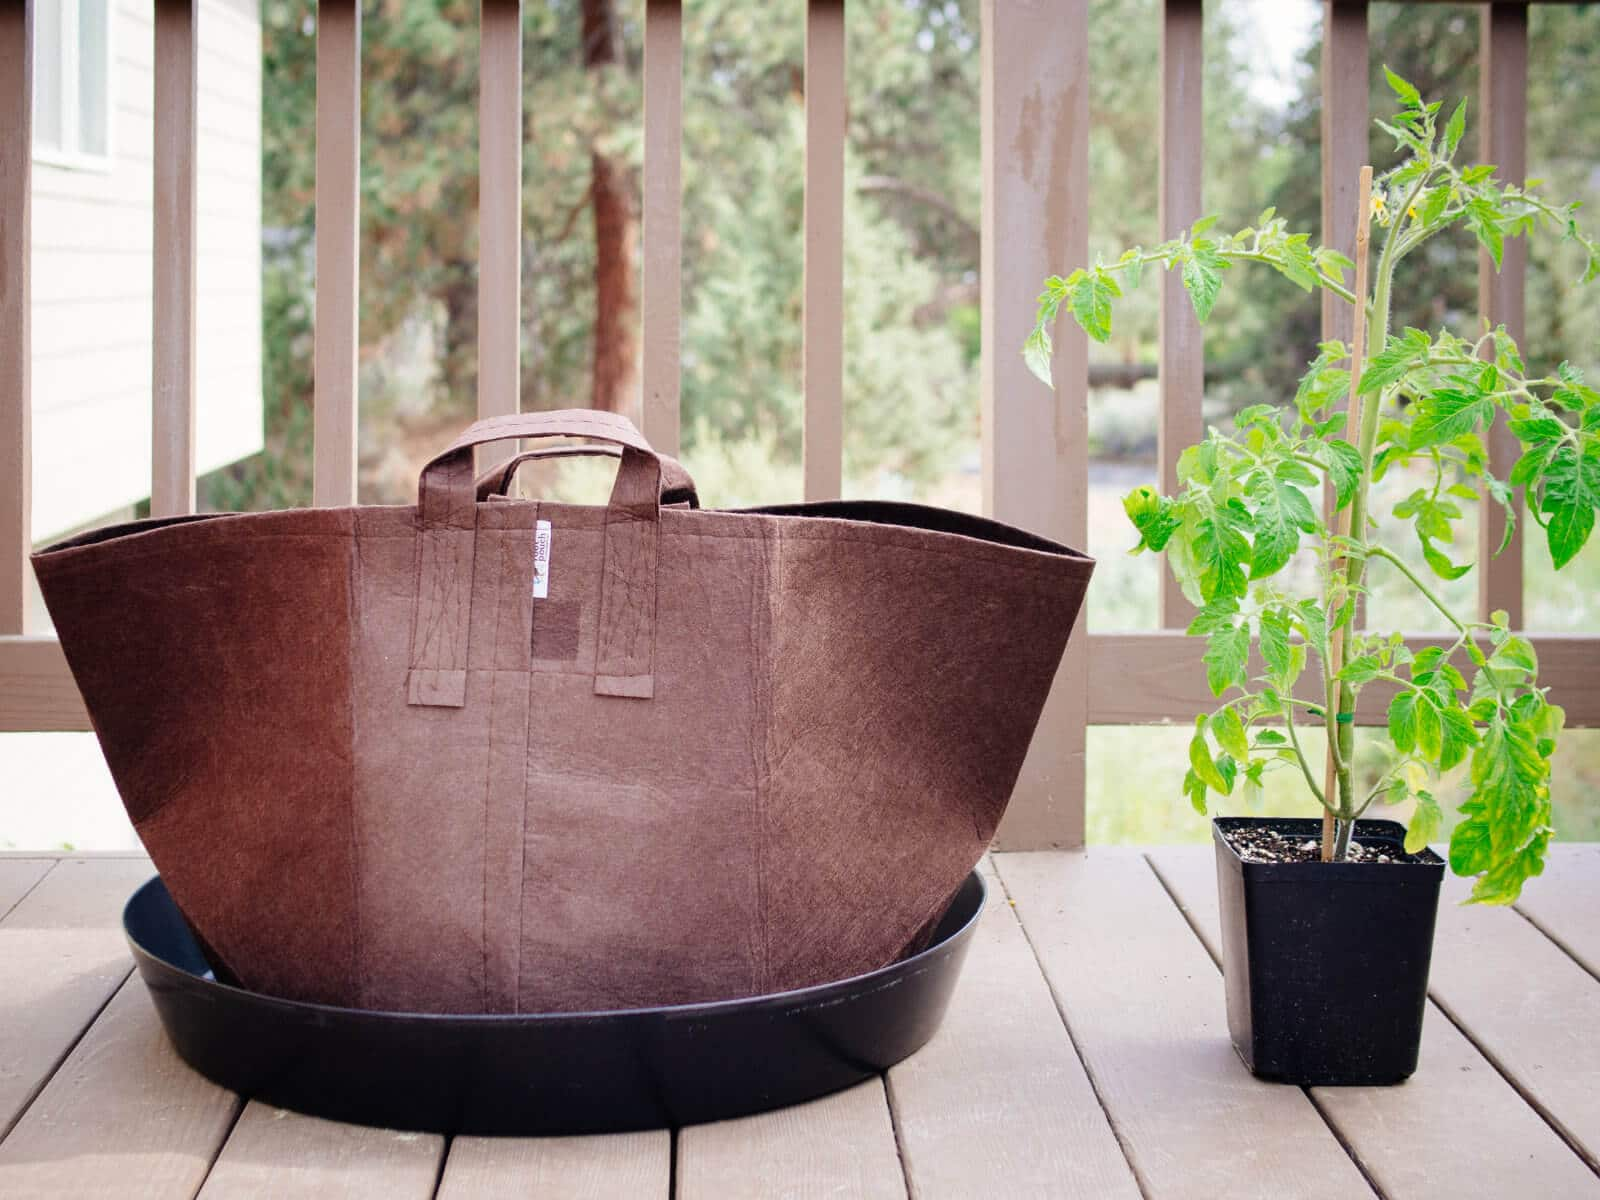 Use fabric pots for growing tomatoes